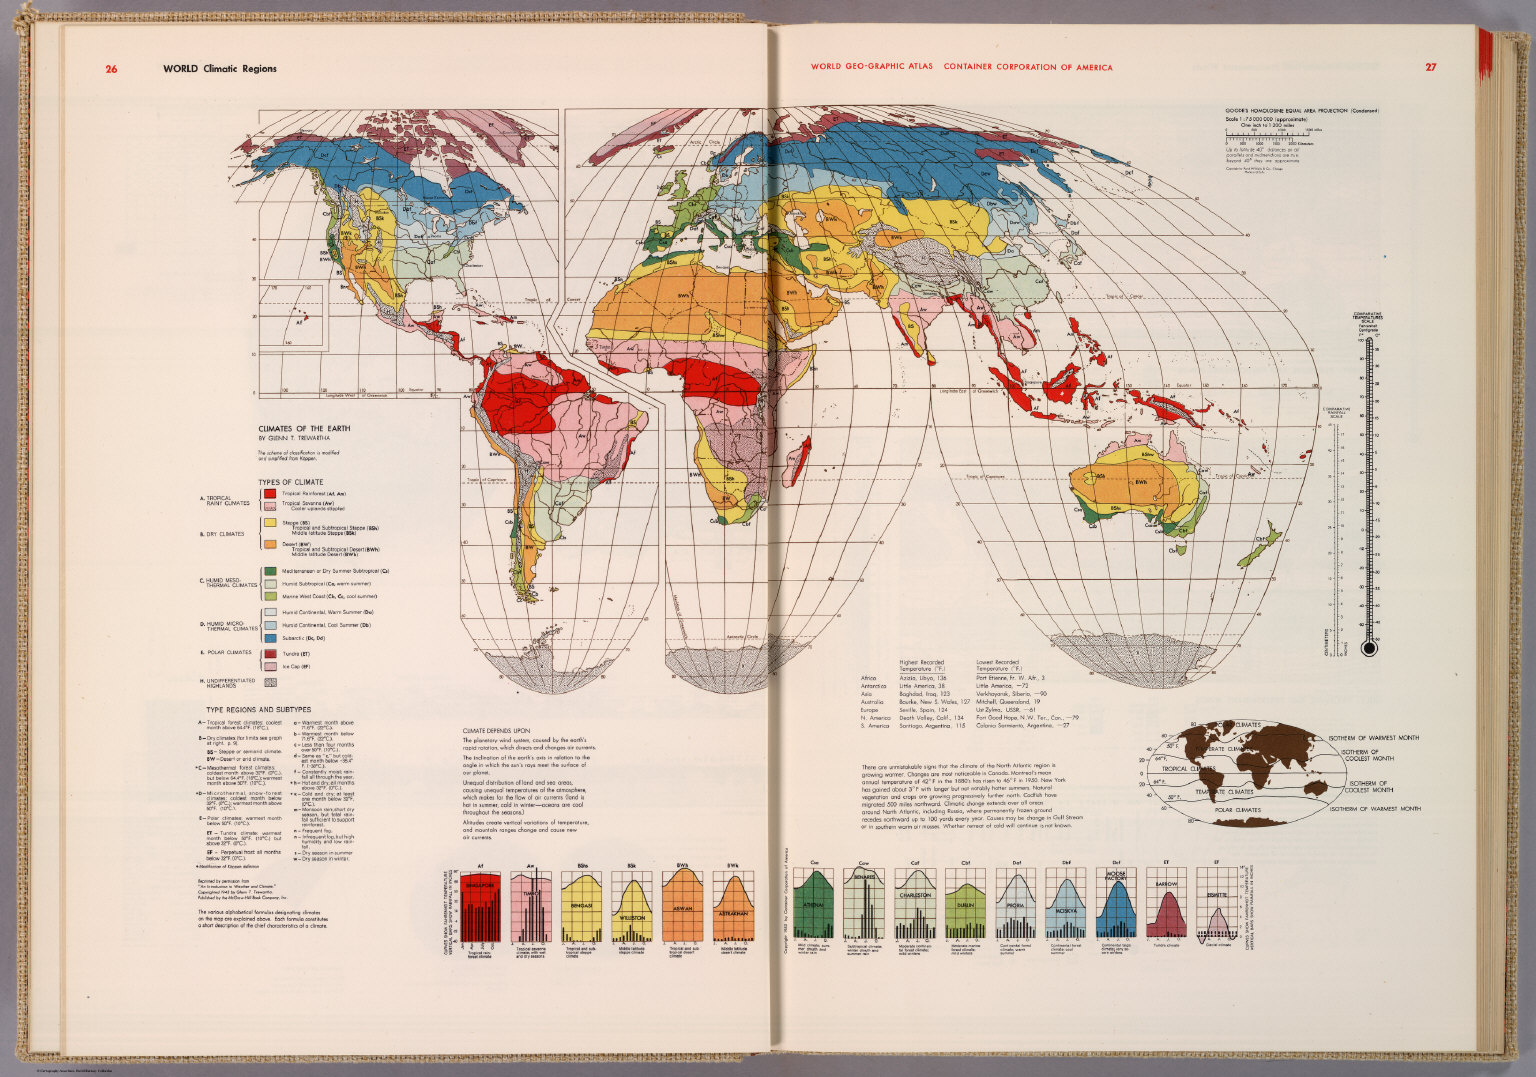 World climatic regions david rumsey historical map collection world climatic regions gumiabroncs Image collections